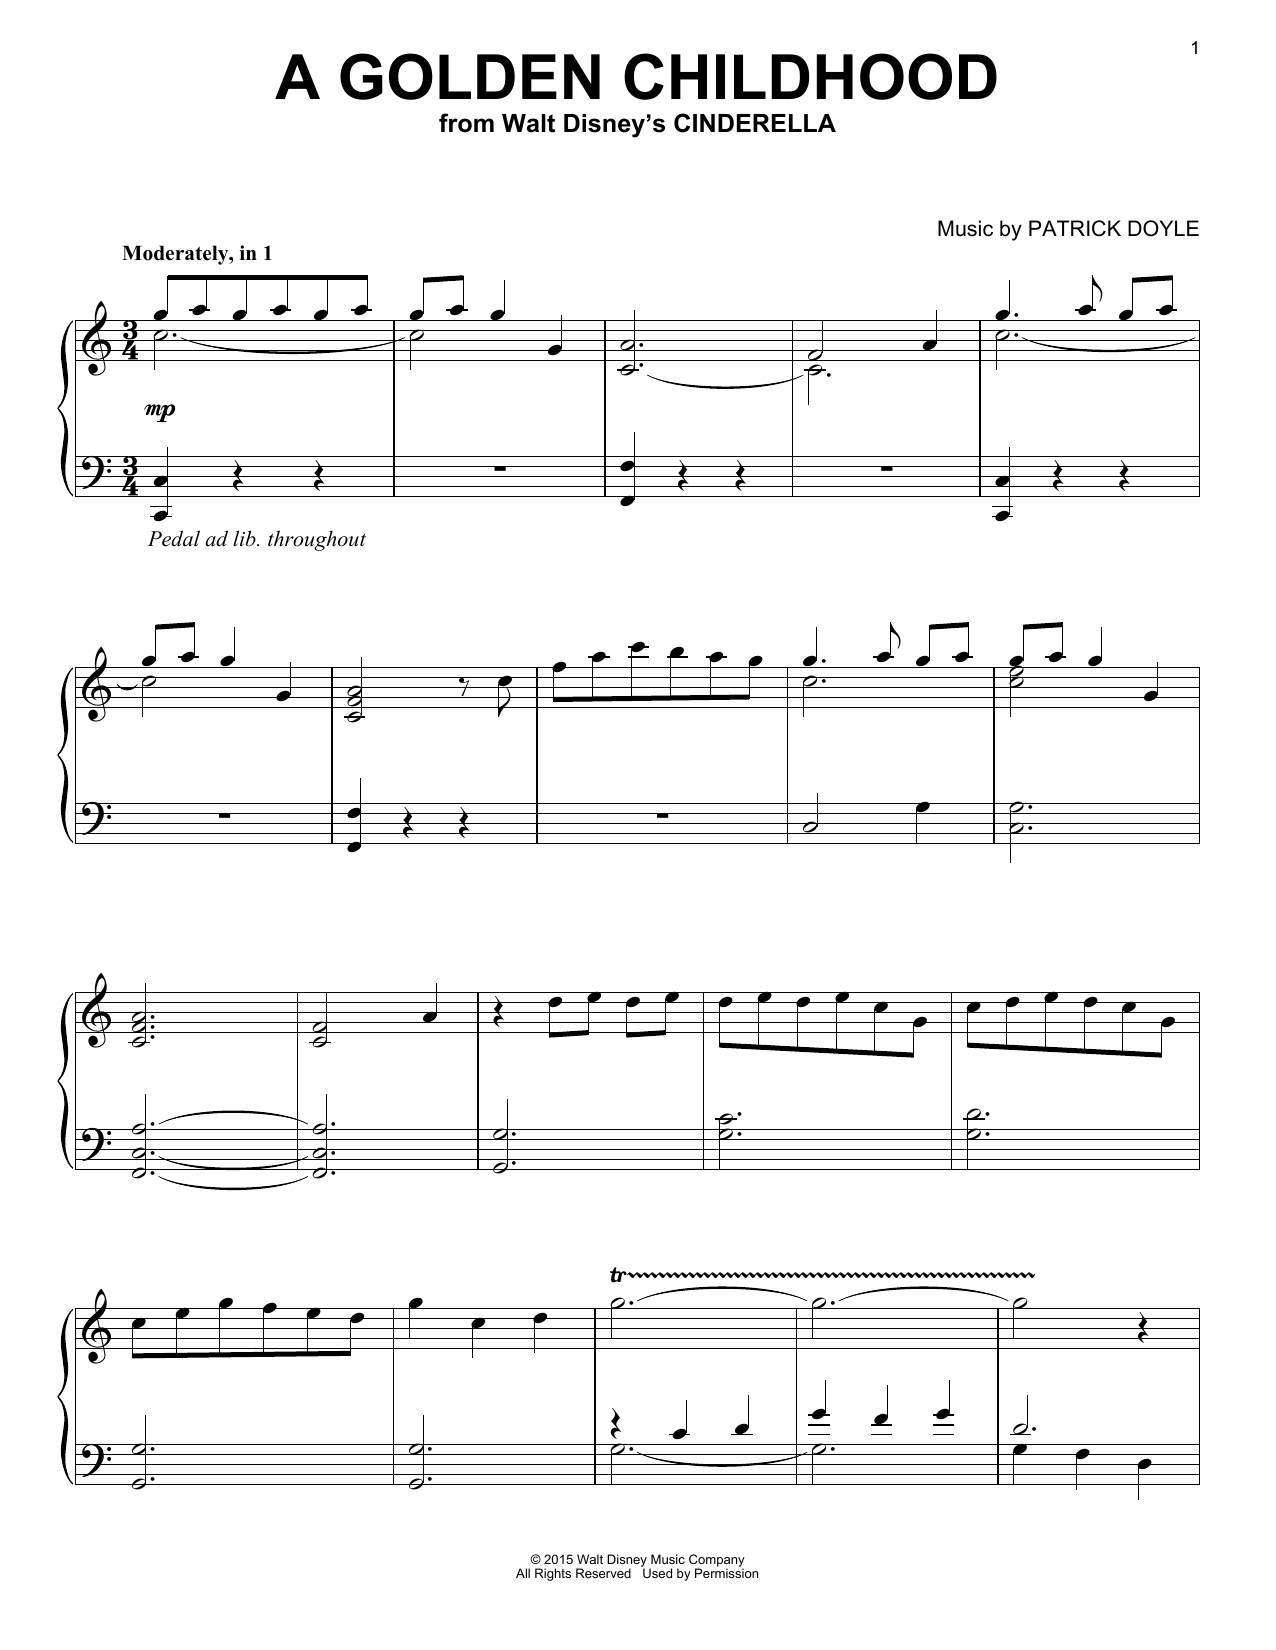 Download Patrick Doyle 'A Golden Childhood (from Walt Disney's Cinderella)' Digital Sheet Music Notes & Chords and start playing in minutes